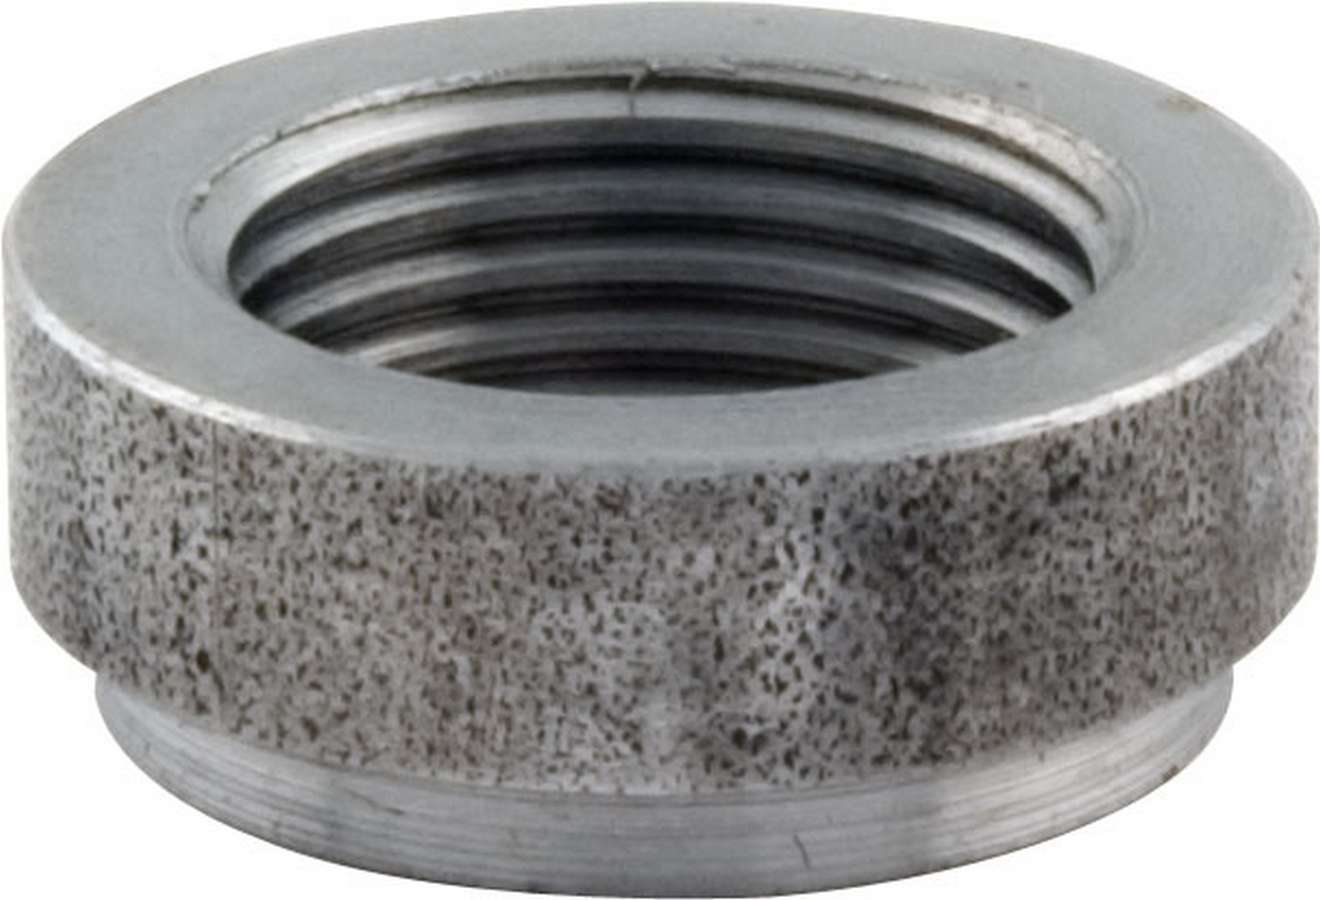 Allstar Performance 34153 Oxygen Sensor Bung, Weld-On, 18 mm x 1.50 Female Threads, Steel, Natural, Each